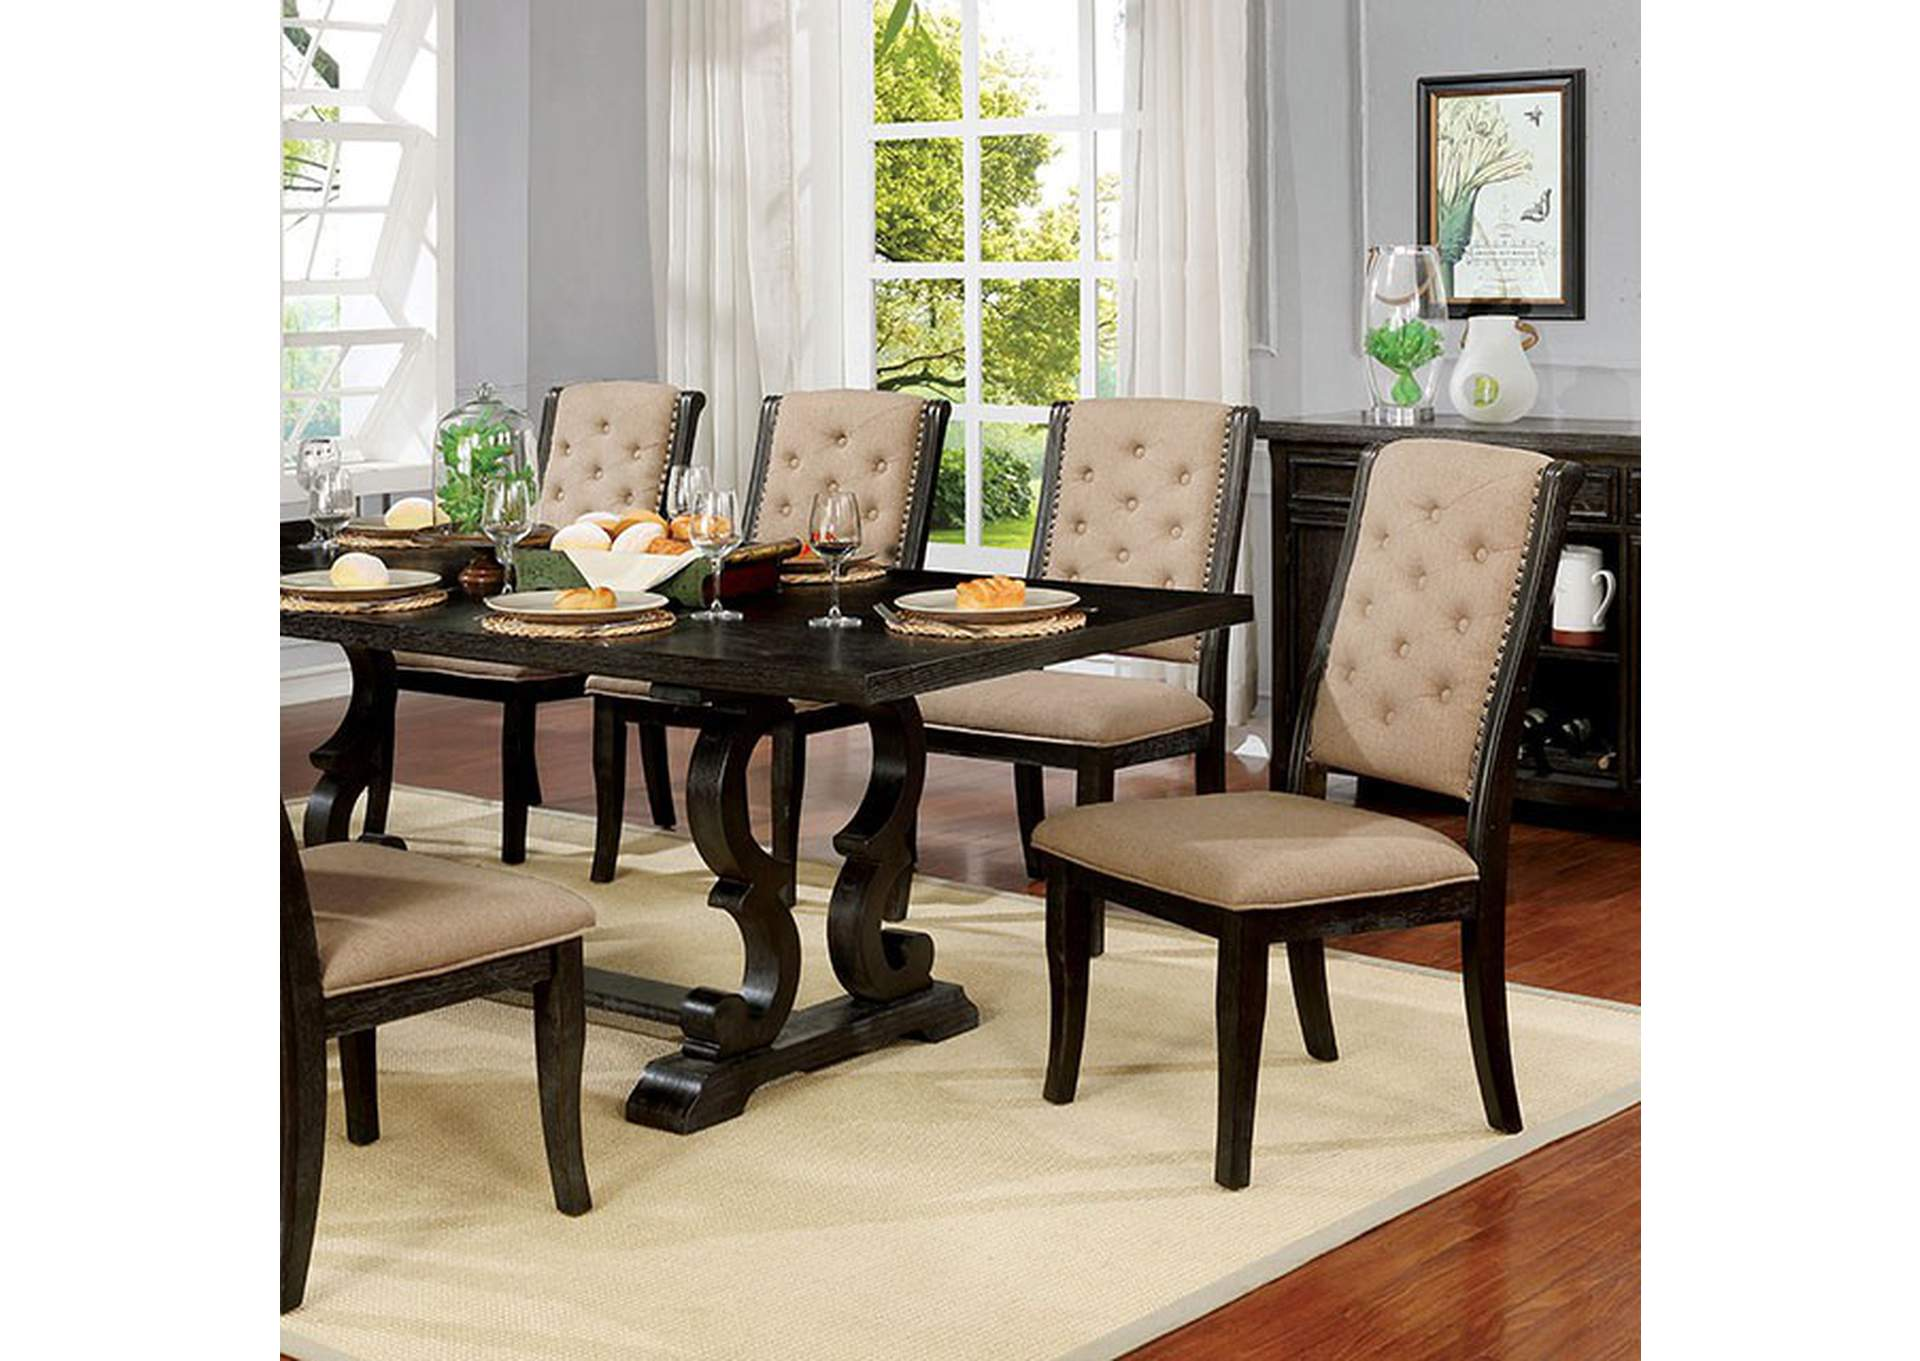 Patience Dining Table,Furniture of America